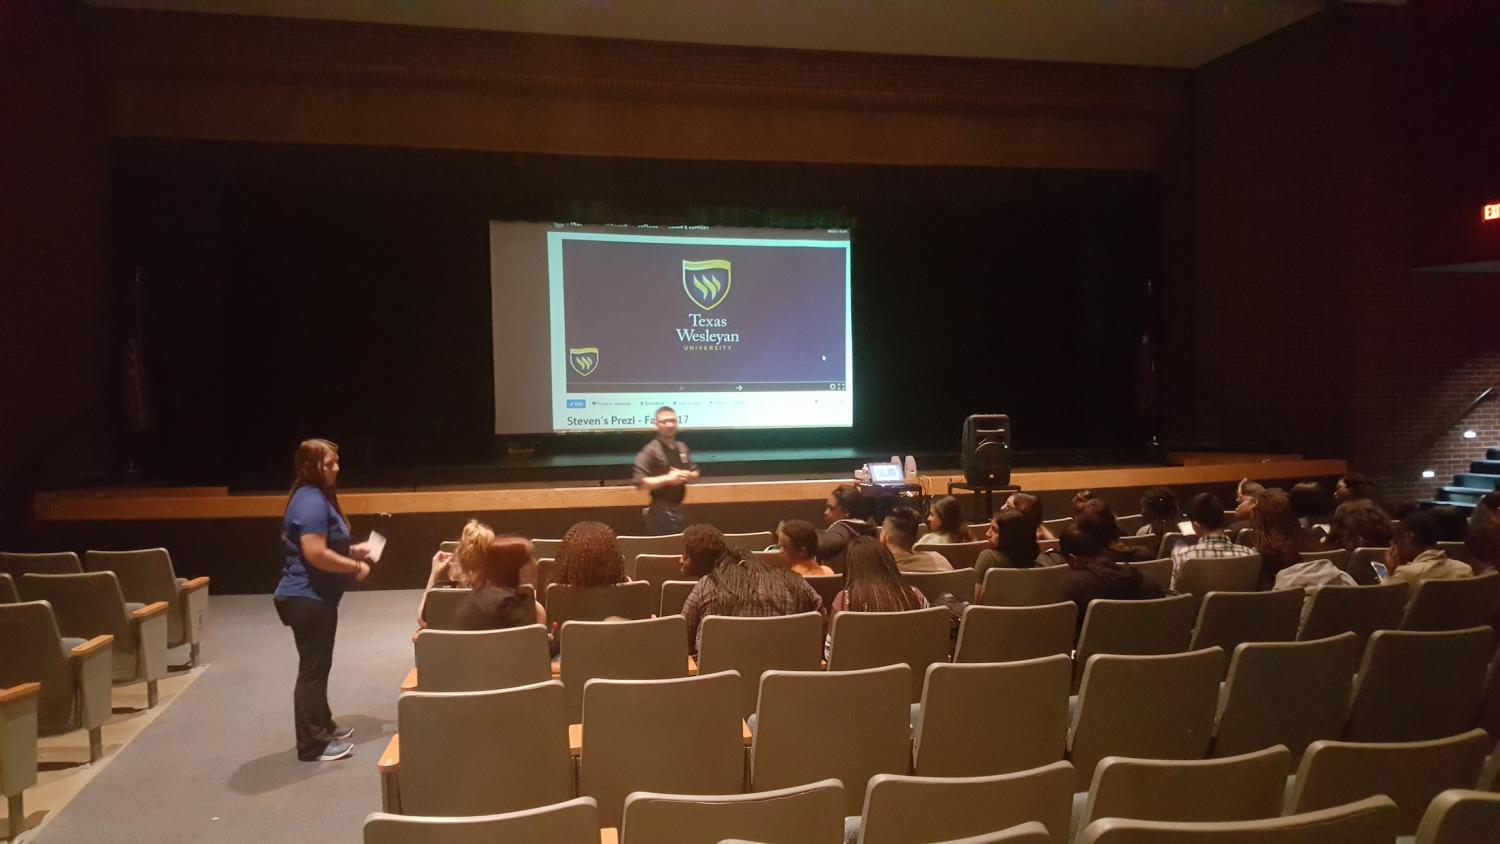 On May 10, A guest speaker was giving out information to AVID students about Texas Wesleyan University.